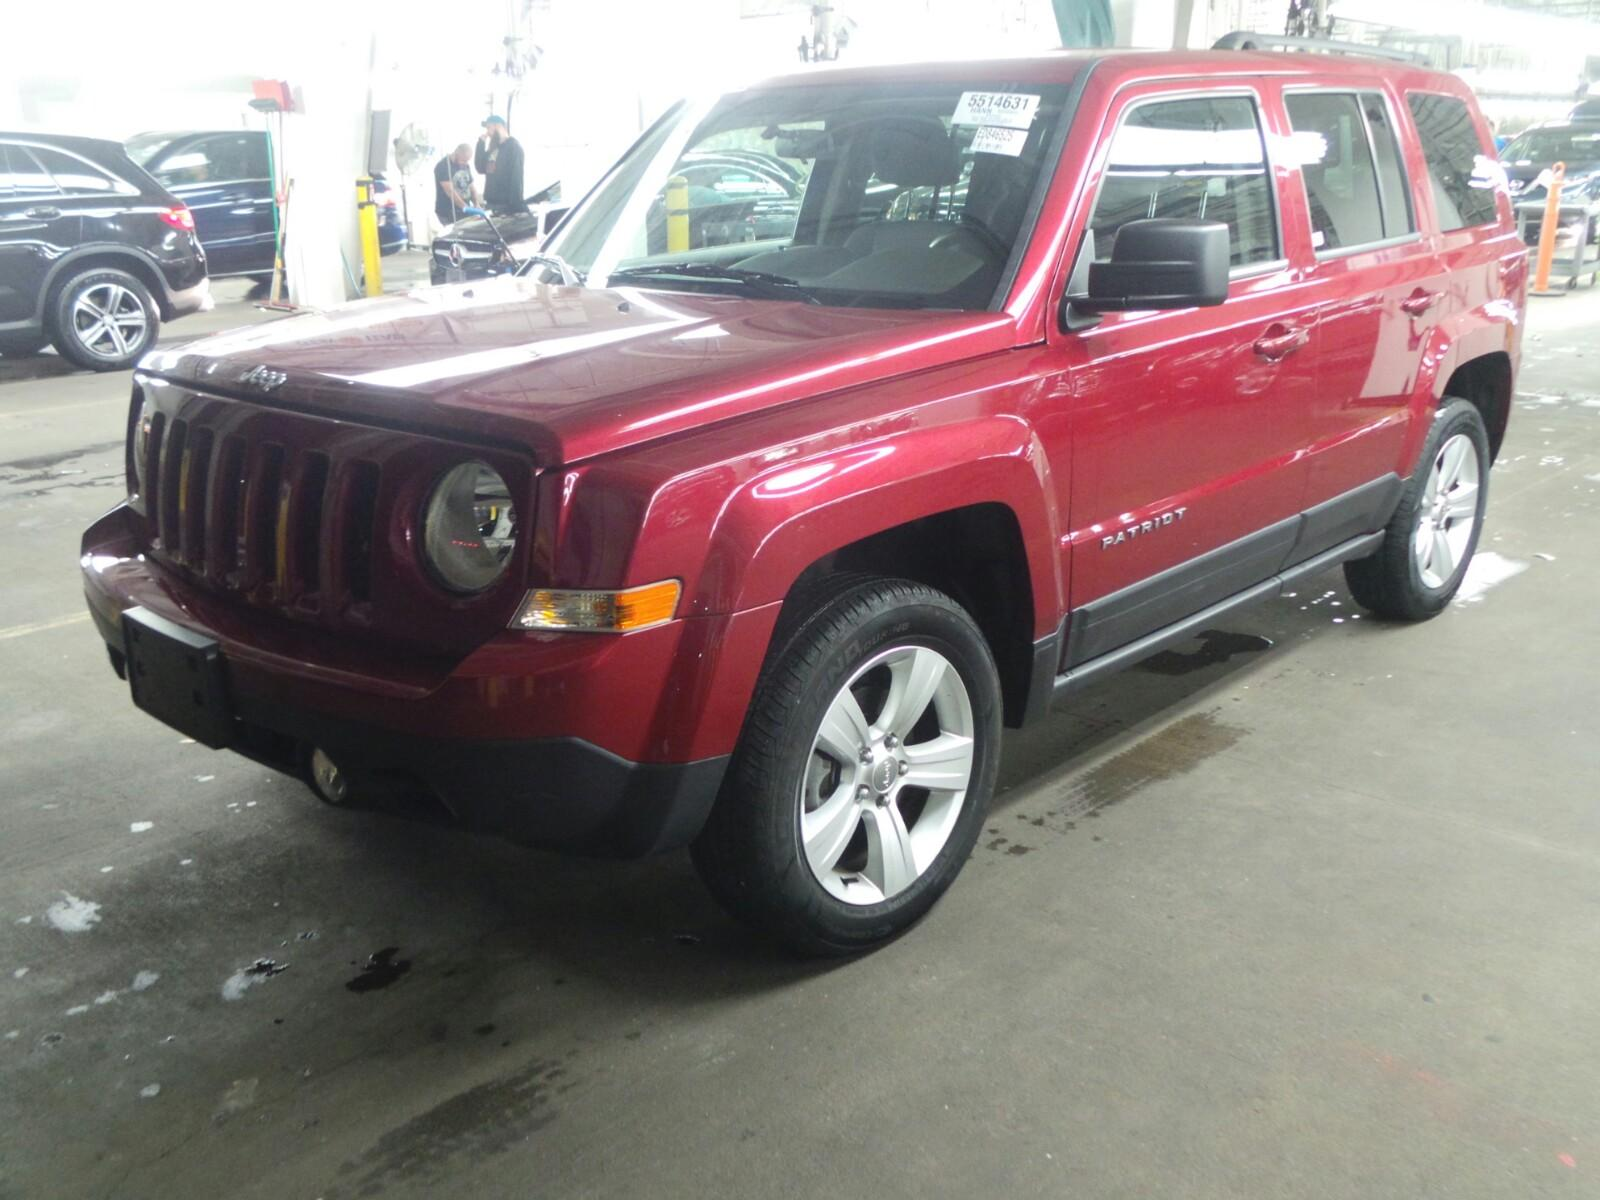 14_jeep_patriot_red_1.jpg